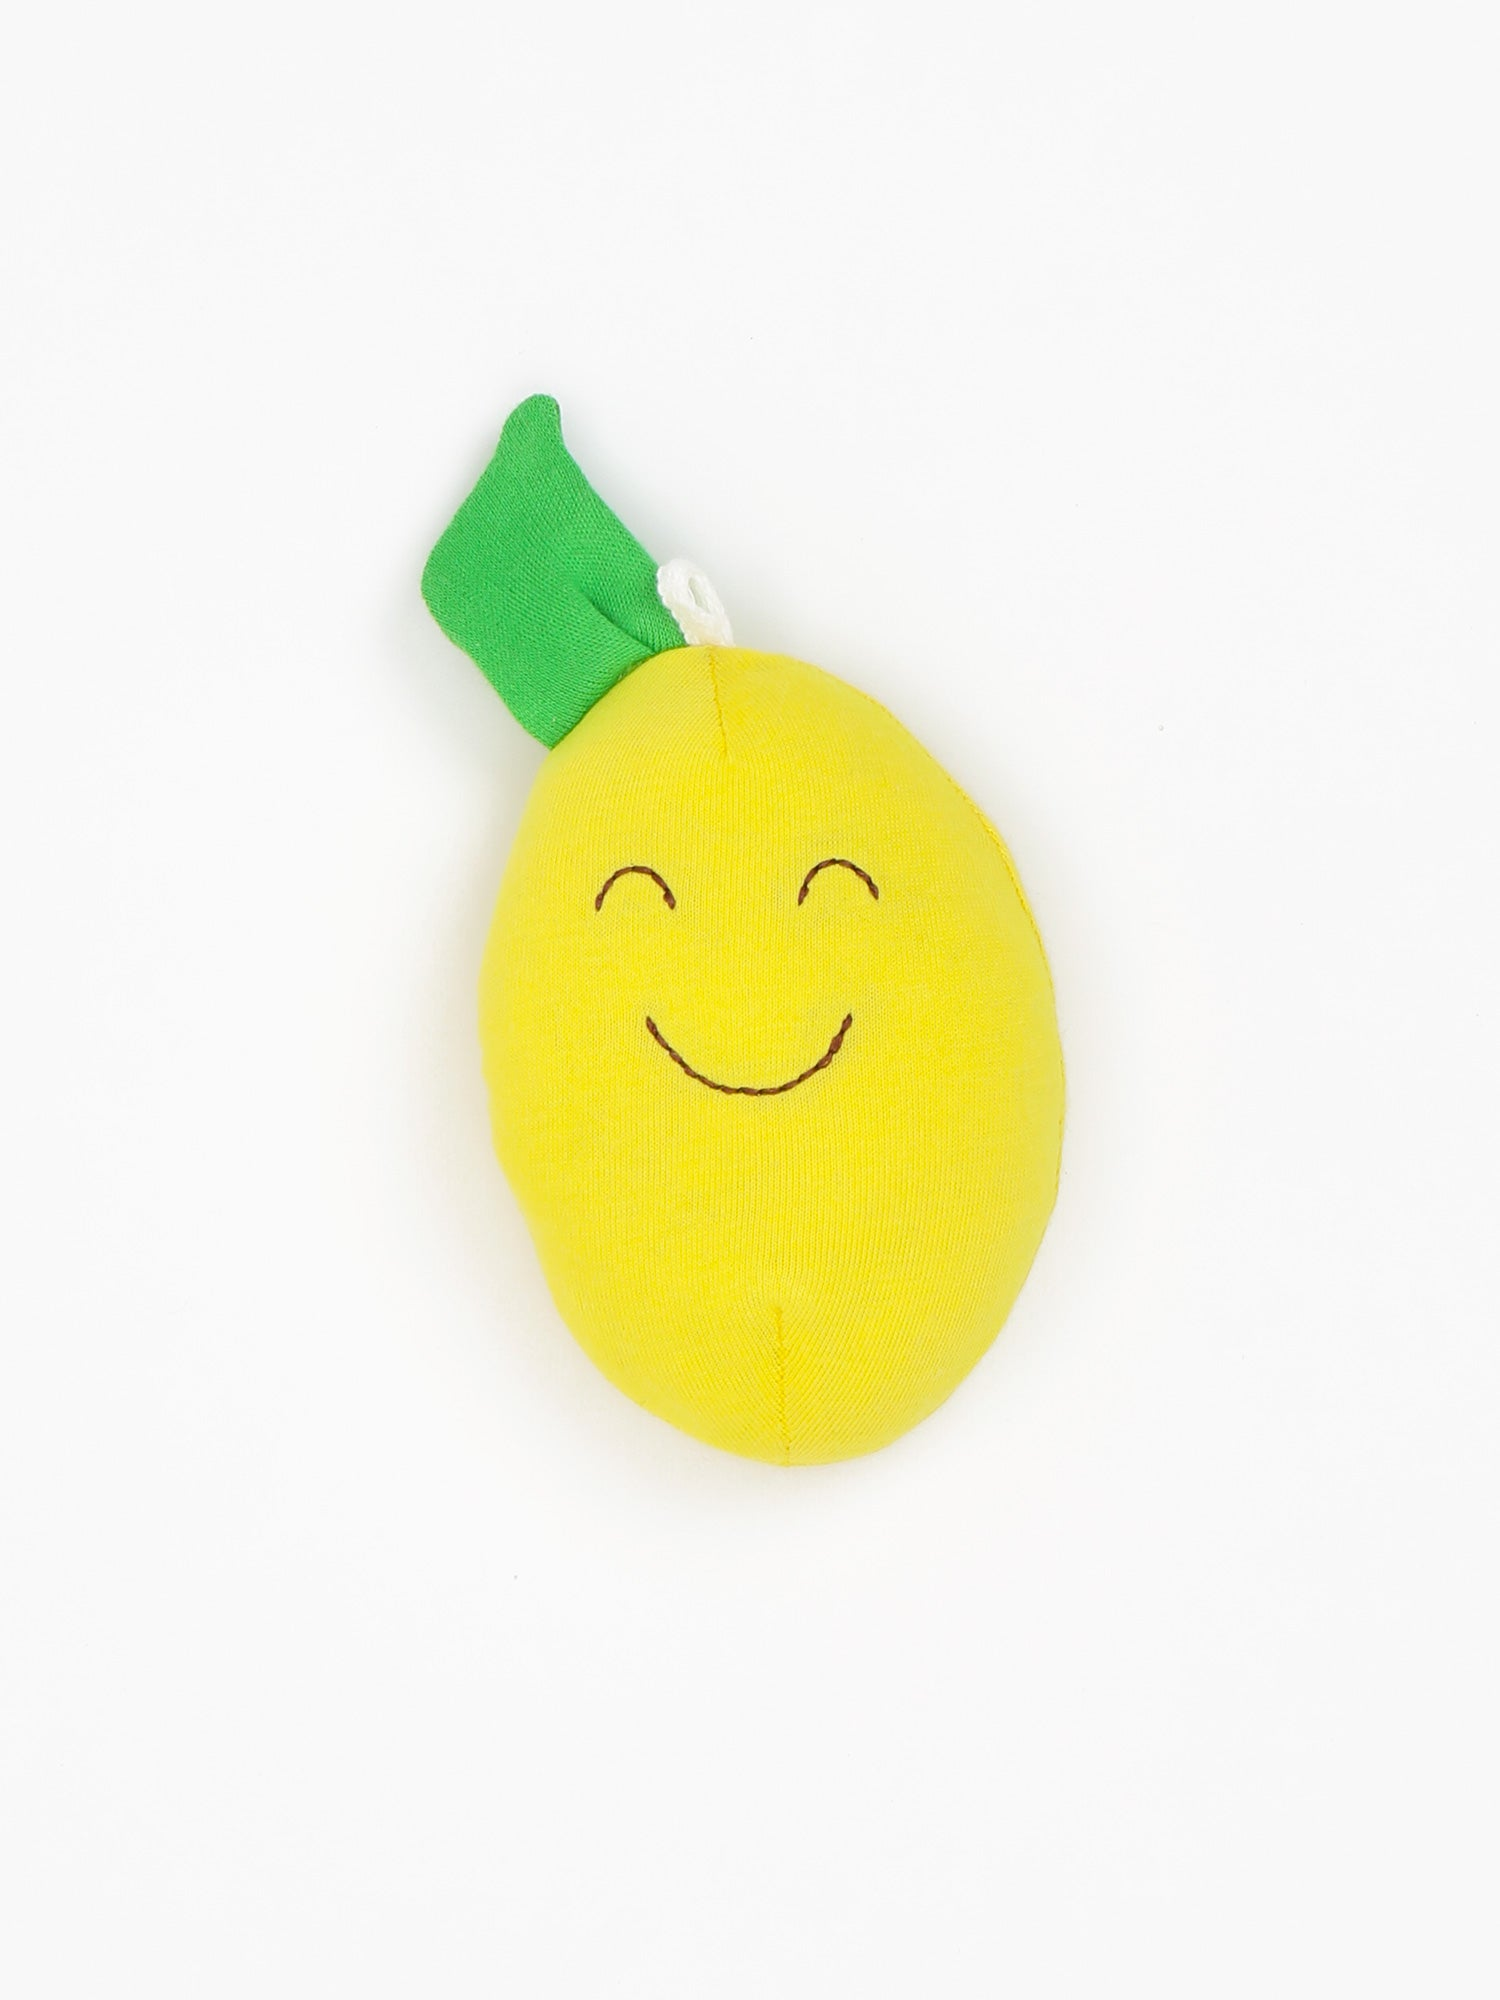 Lemon Fruit Toy